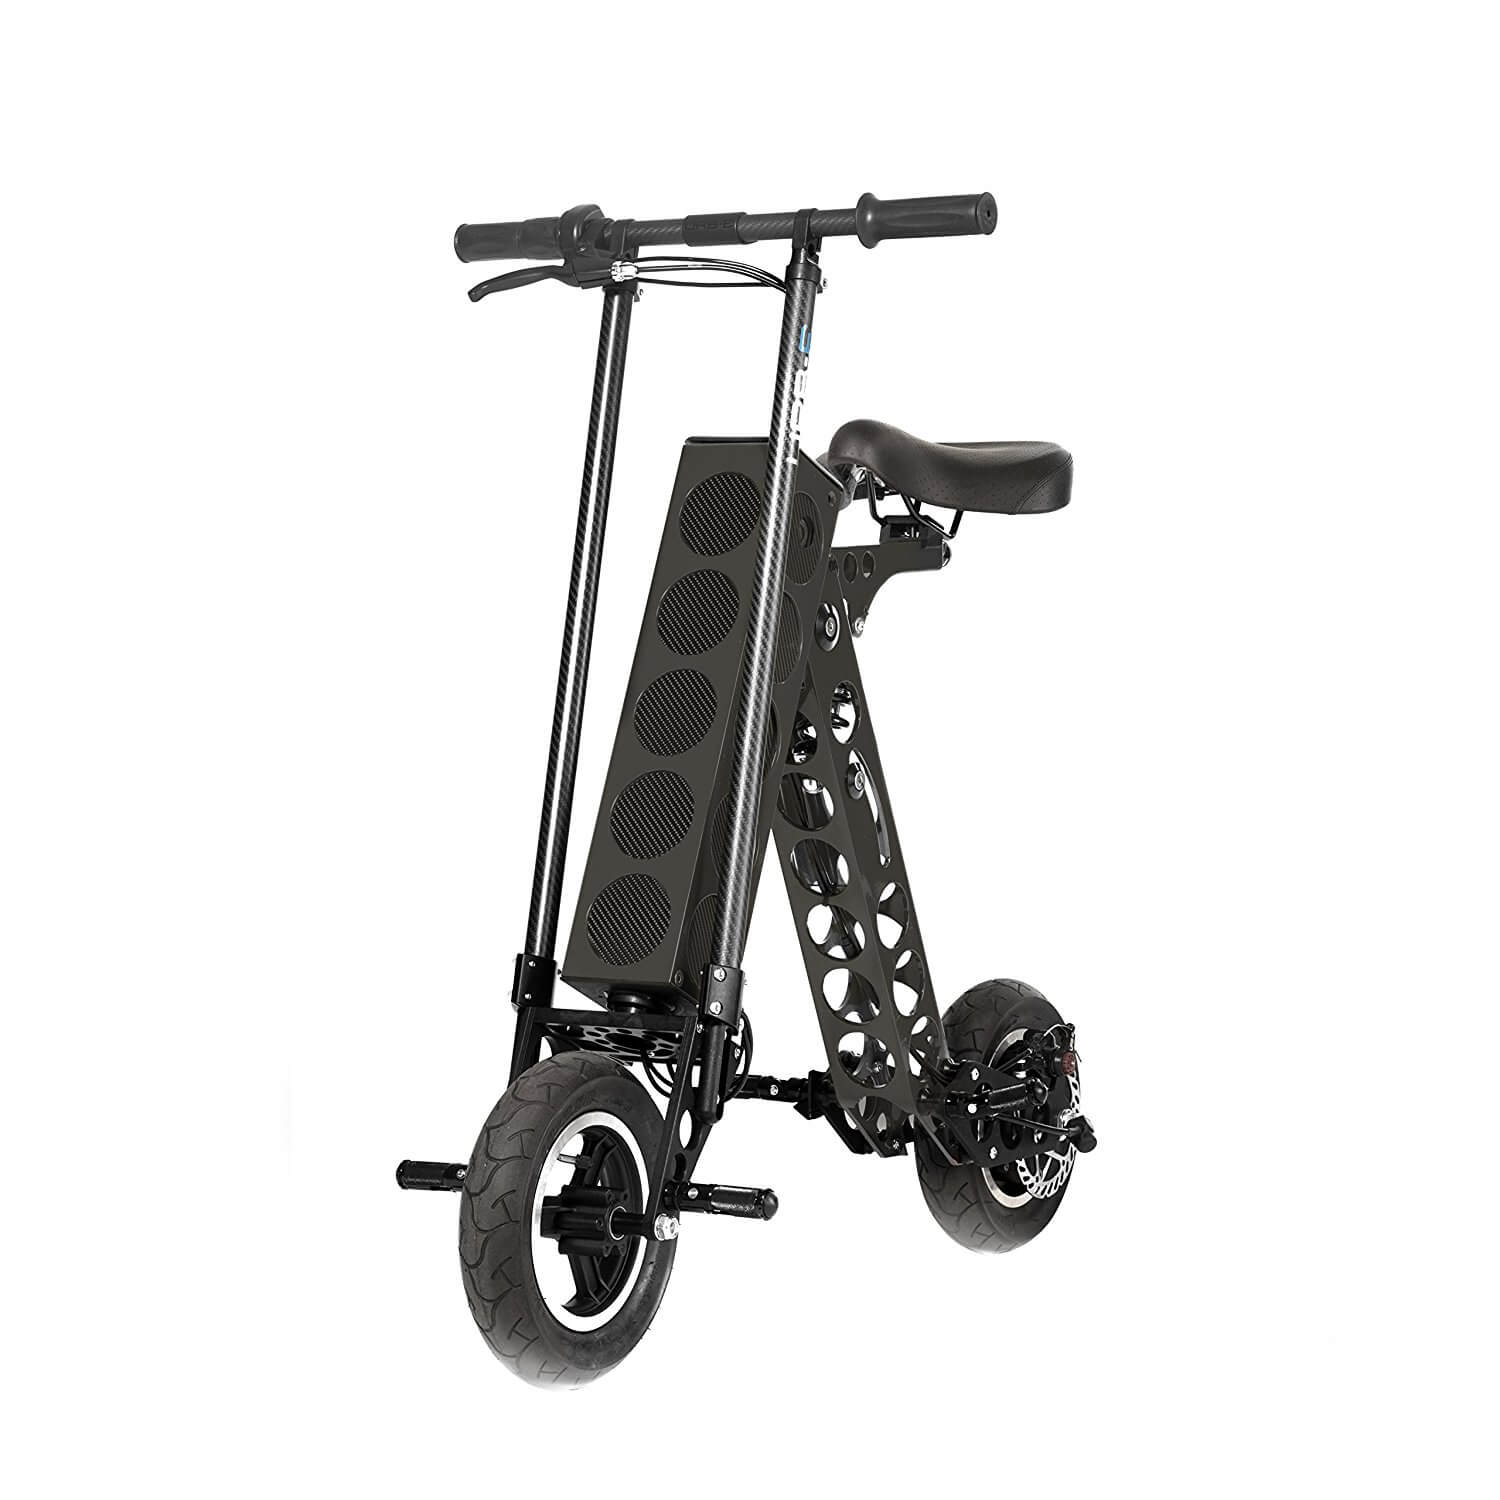 URB-E Folding Electric Scooter - Best Electric Scooters for Adults